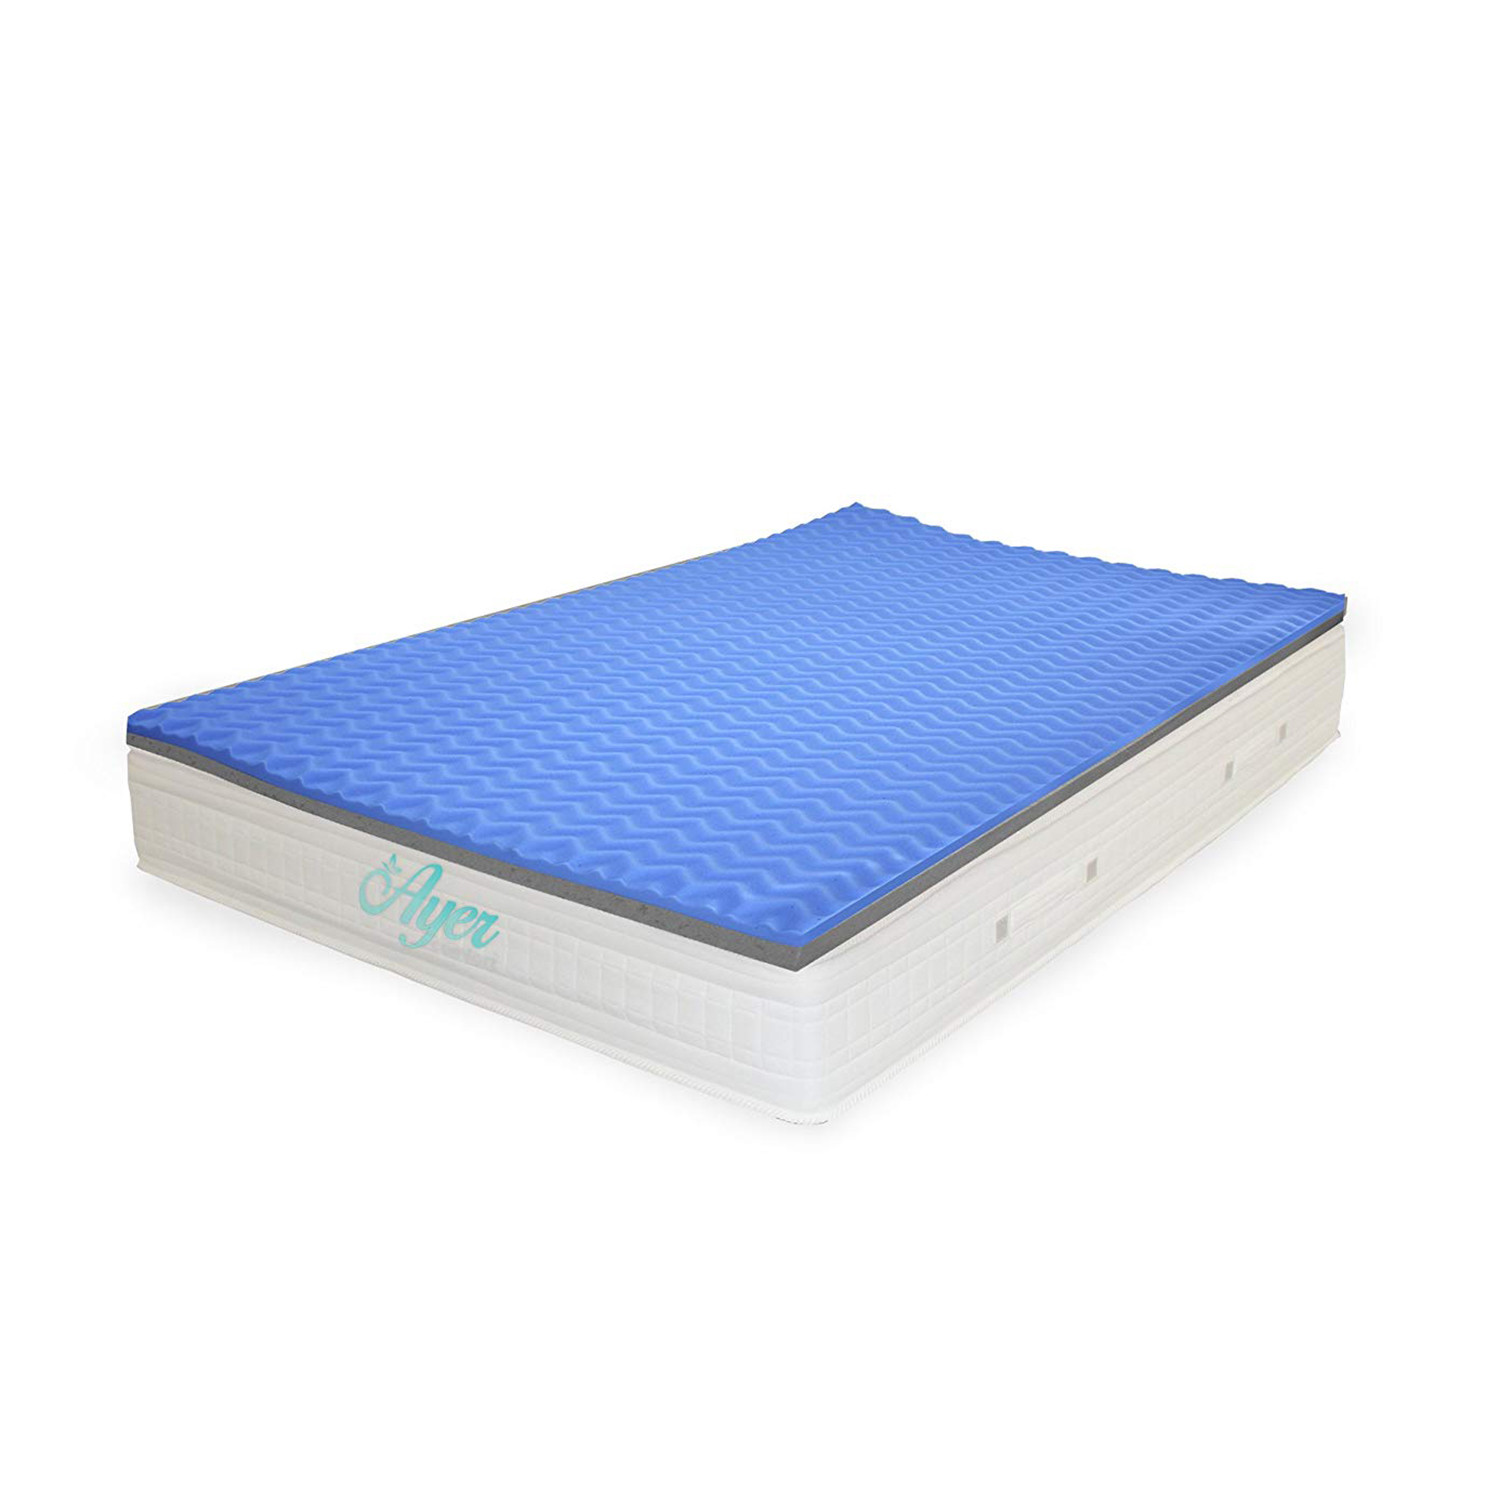 double sided memory foam mattress topper twin ayer. Black Bedroom Furniture Sets. Home Design Ideas